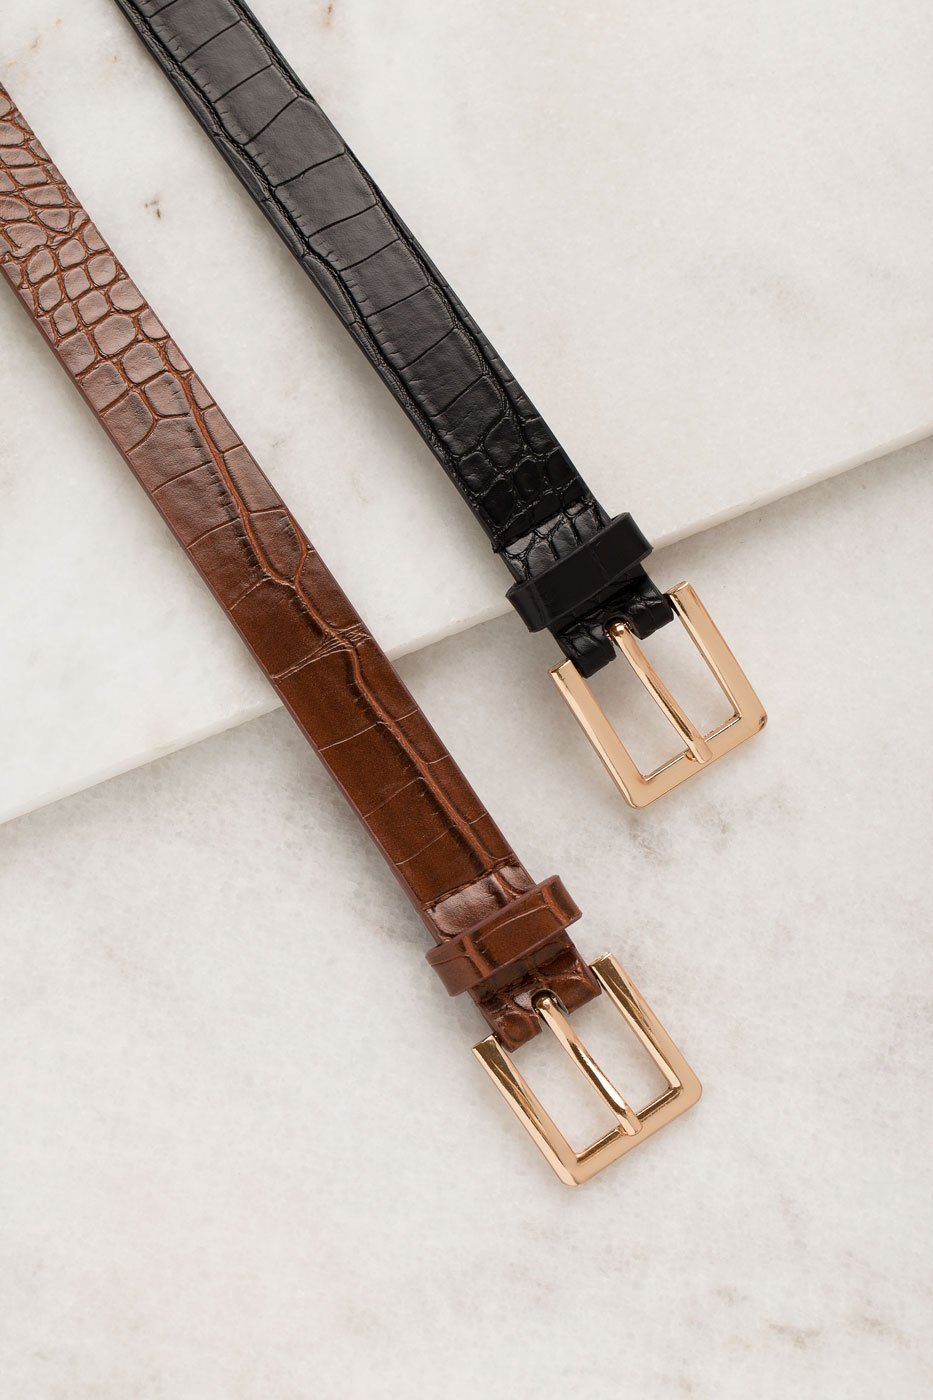 Thin Brown Belt with man made crocodile skin texture and a gold buckle